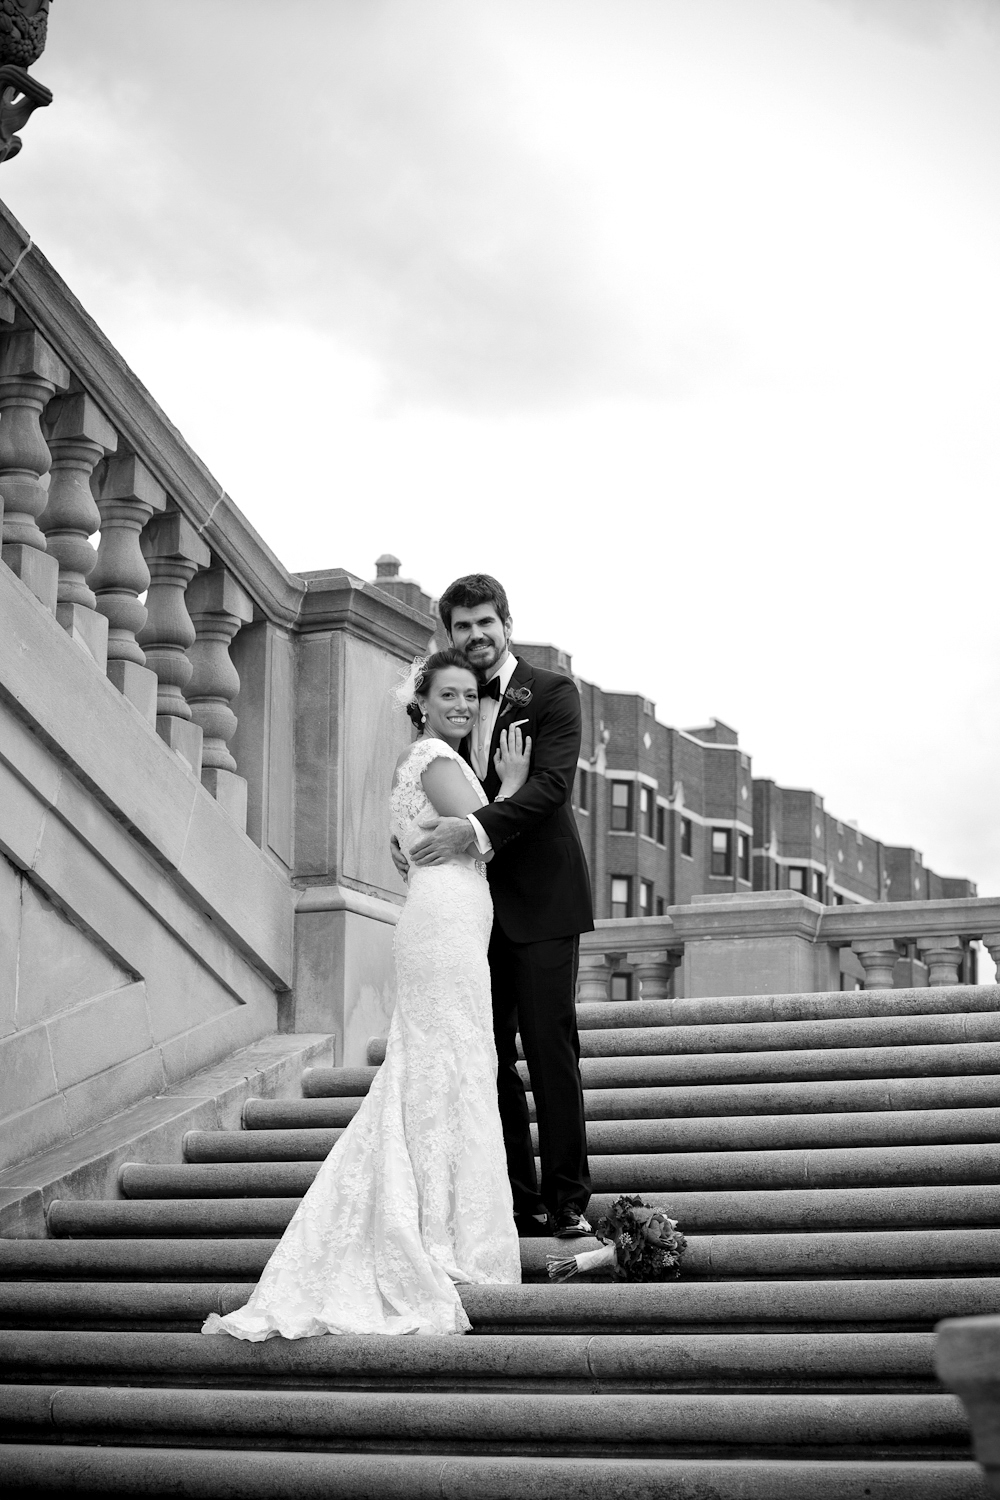 Indianapolis-Indiana-War-Memorial-Wedding-Photographer-Crowes-Eye-Photography-Bride-Groom-Ceremony-2570.jpg